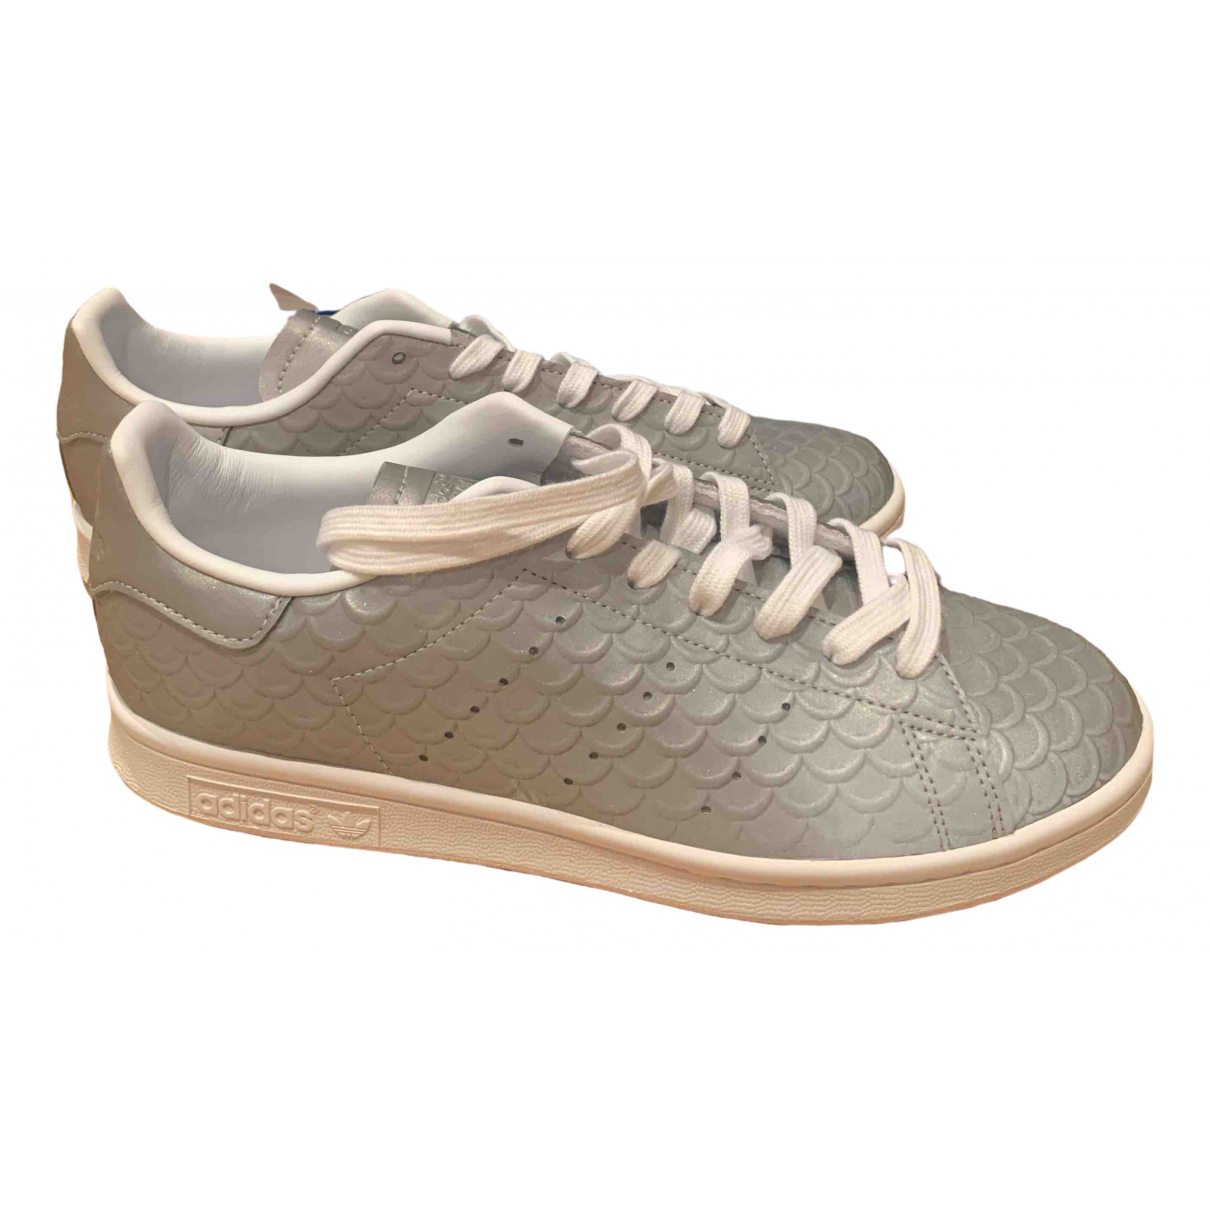 Adidas Stan Smith Grey Leather Trainers for Women 6.5 UK